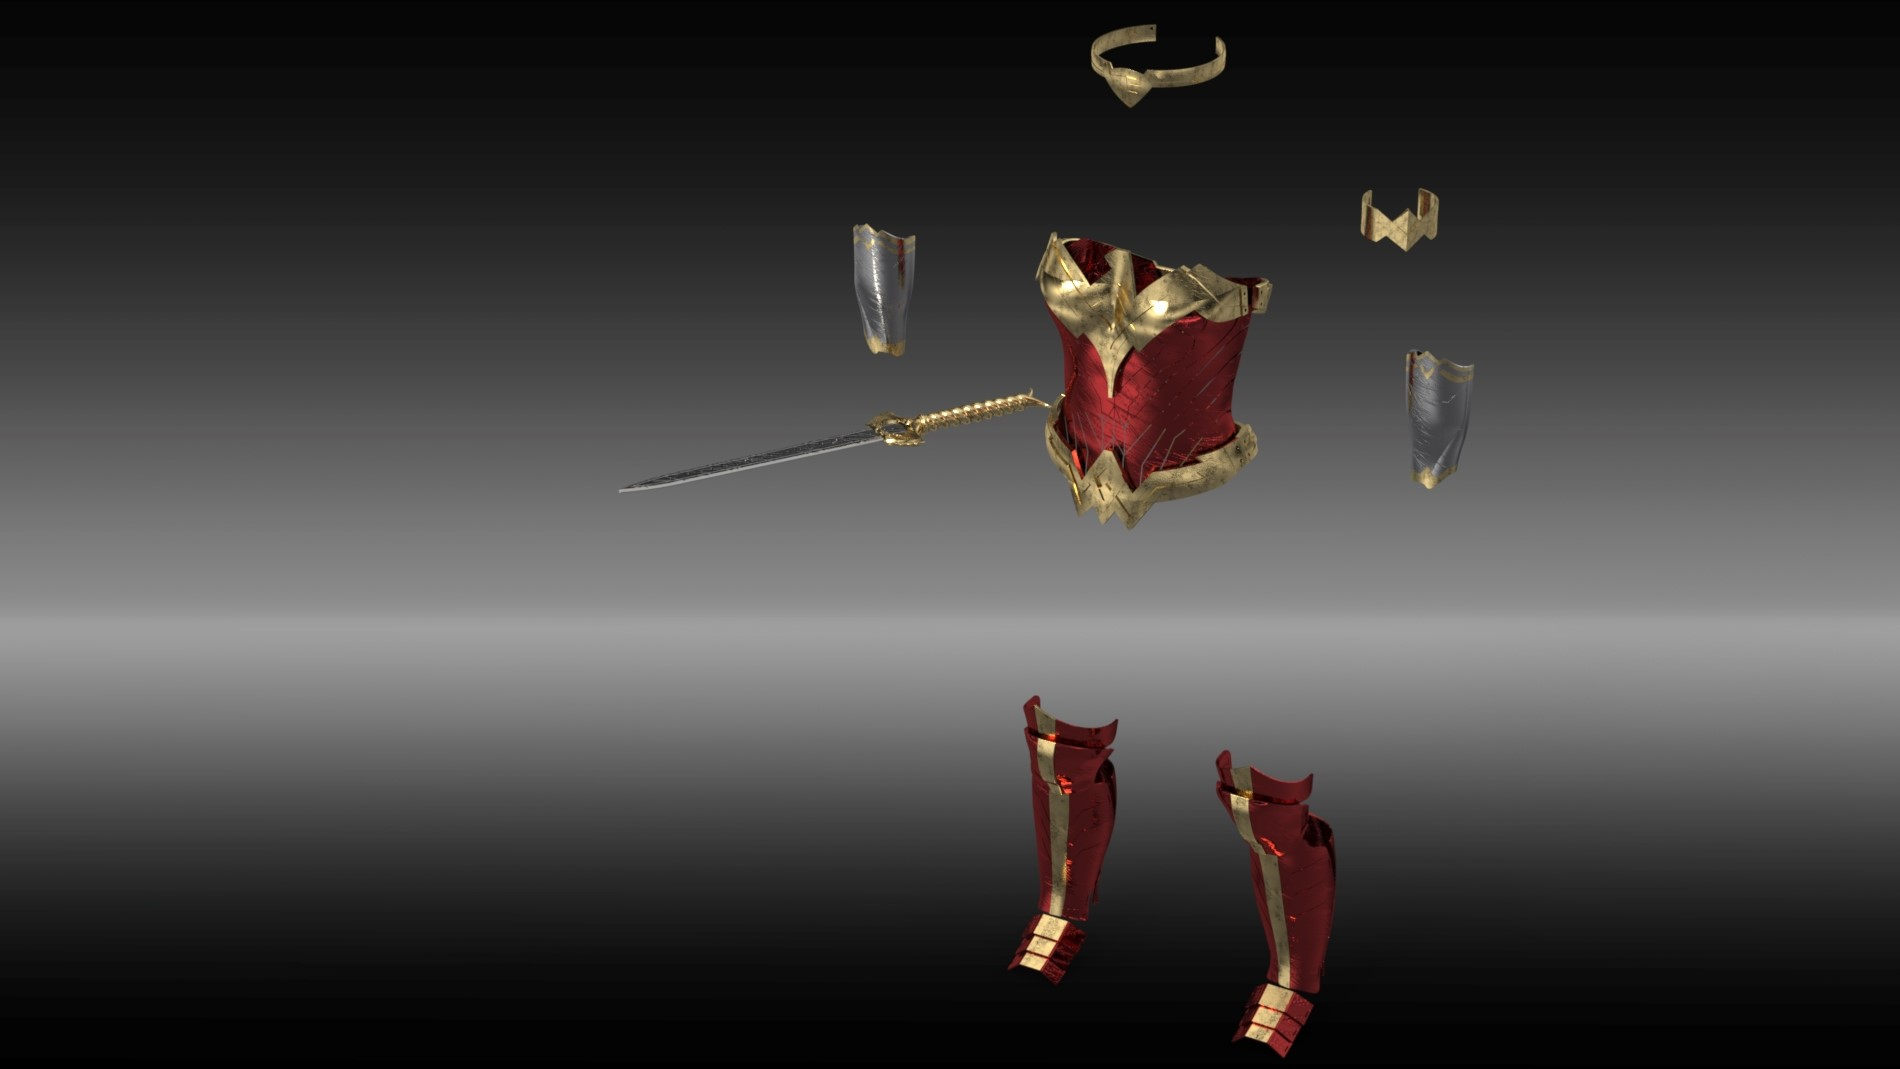 Custom Wonder Woman Costume Using SOLIDWORKS, 3D Printing, and 3D Scanning